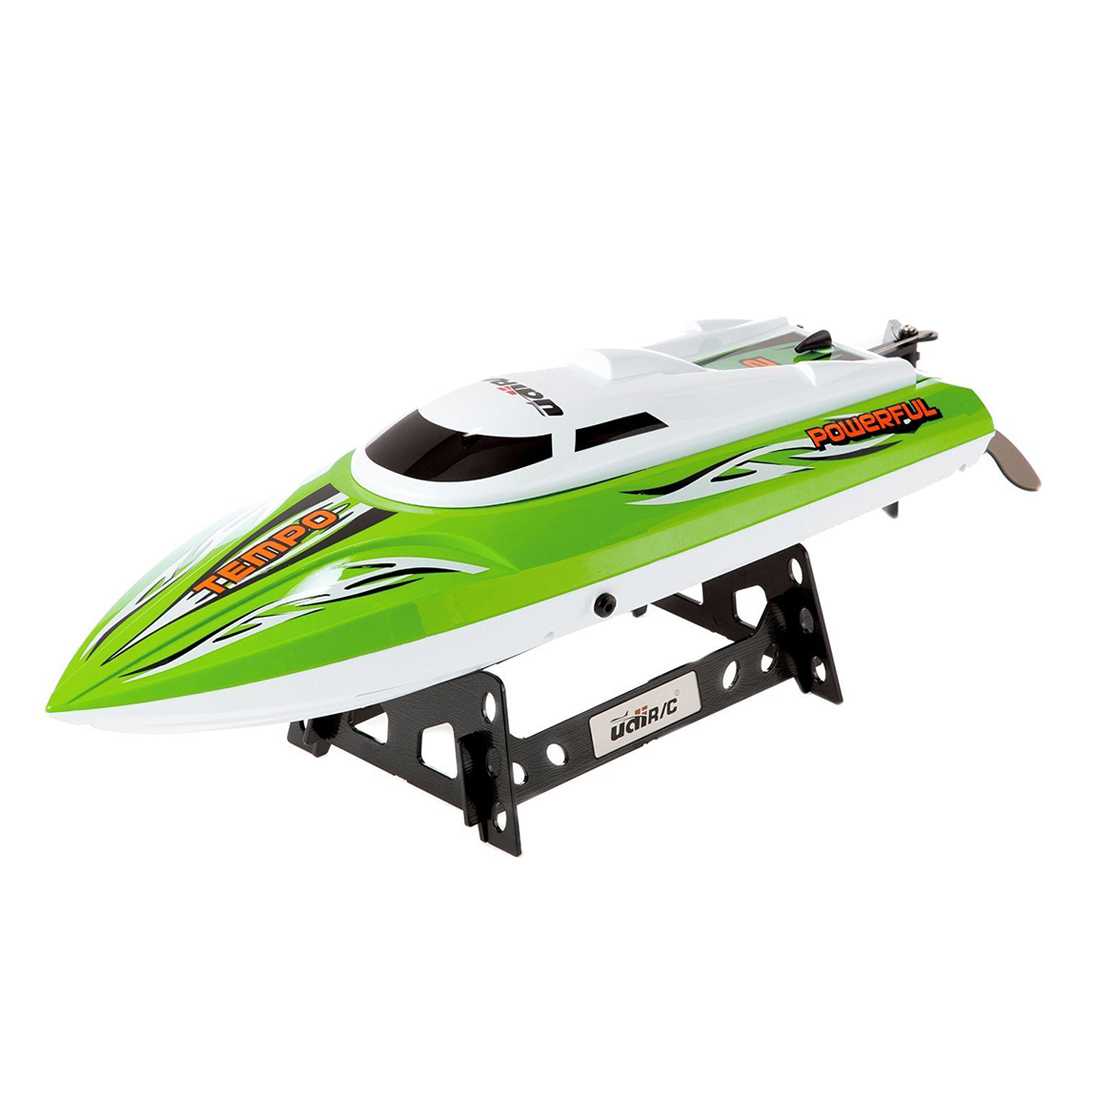 Udirc UDI002 Tempo Remote Control Boat for Pools, Lakes and Outdoor Adventure - 2.4GHz High Speed Electric RC Green skytech h100 2 4ghz 4ch automatic high speed racing boat waterproof rc boat electric boats for pools lakes outdoor adventure